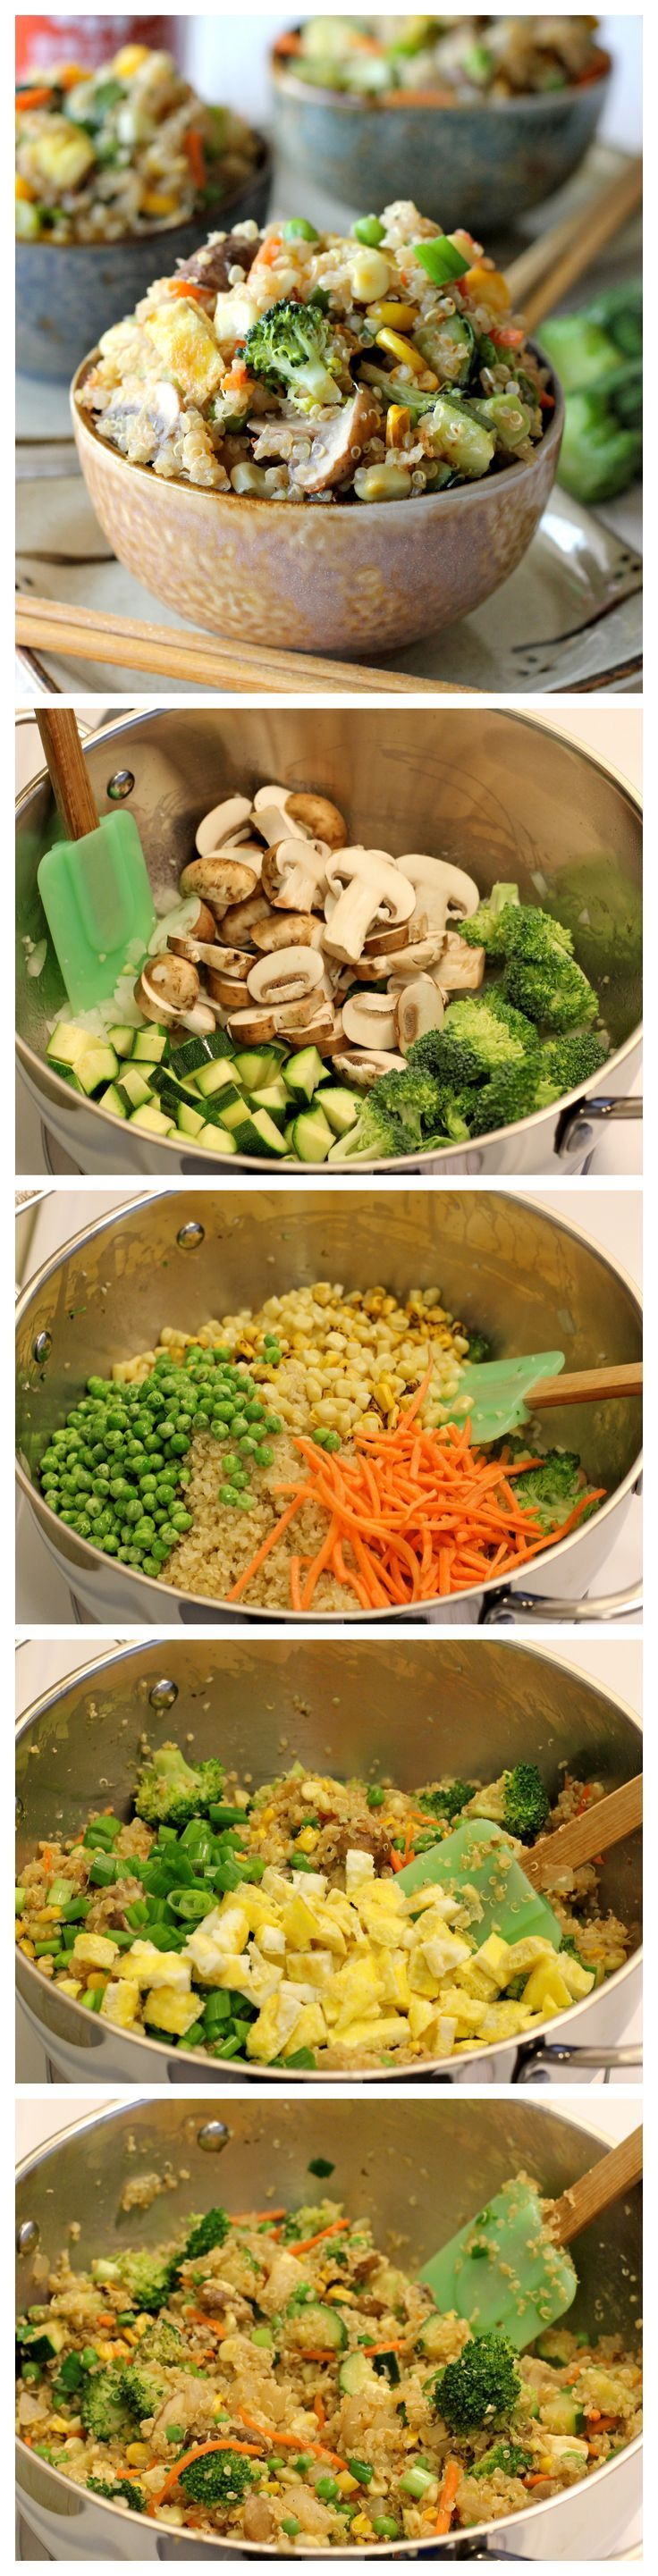 """Quinoa Veggie """"Fried Rice"""" - Quinoa is a wonderful substitute in this protein-packed veggie """"fried rice""""!"""